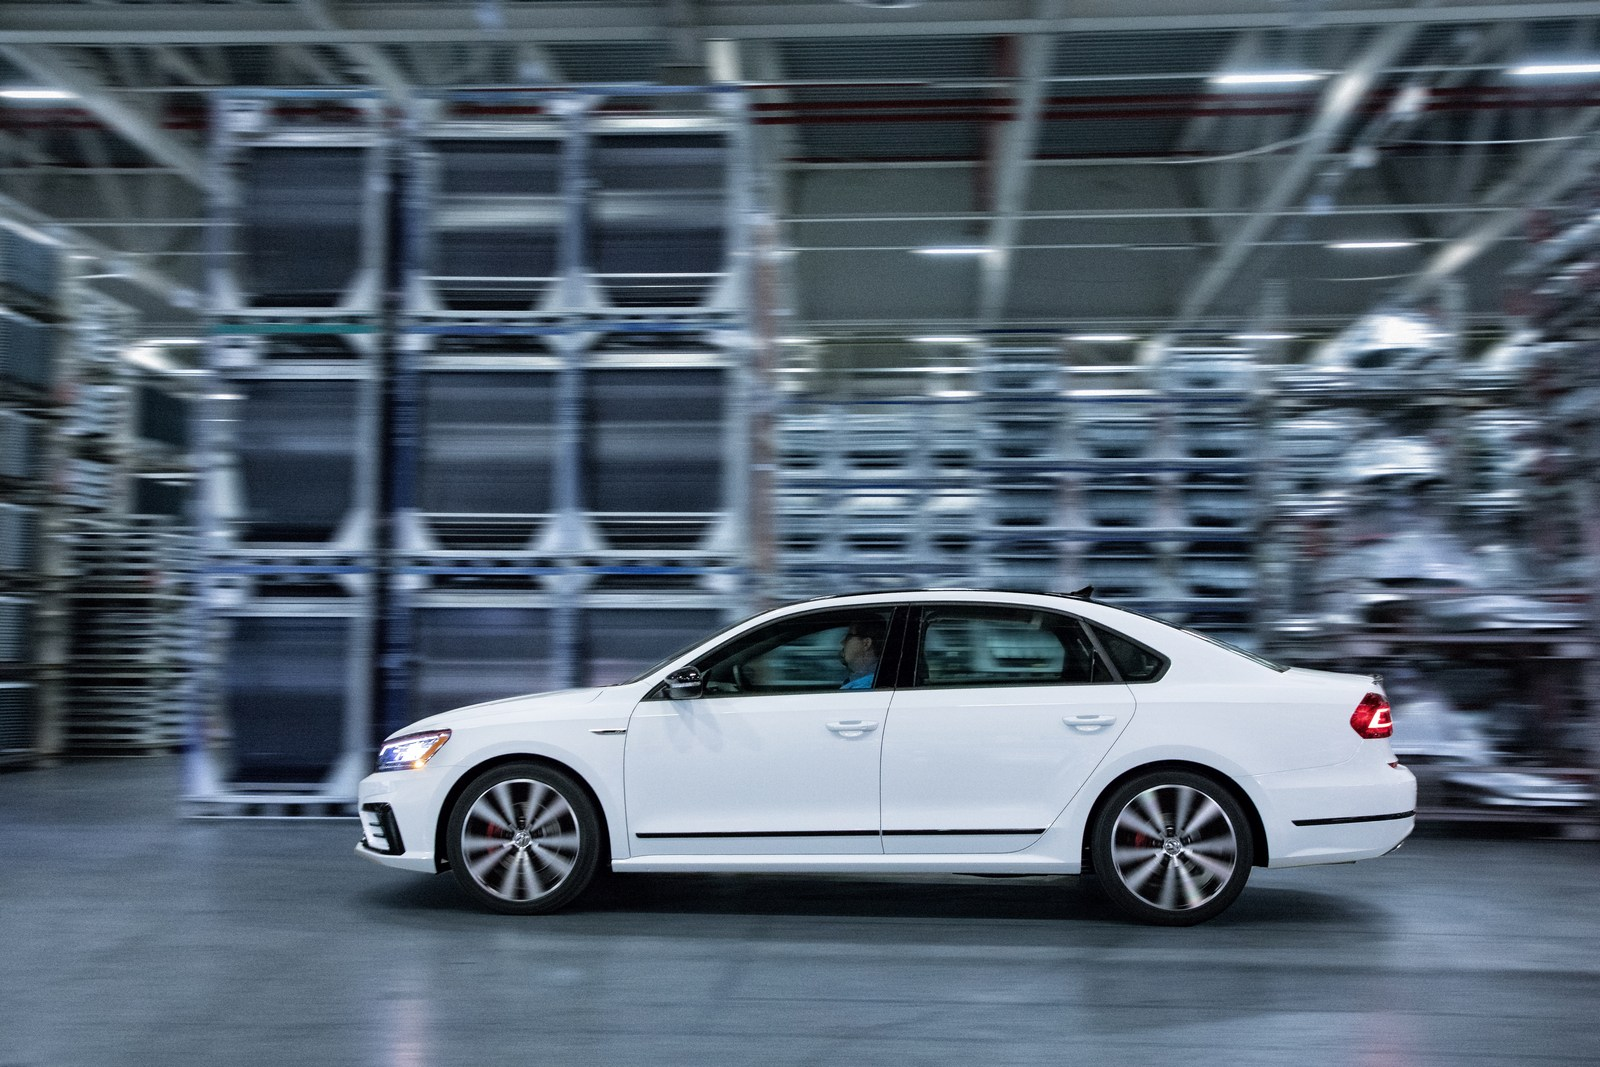 2018 vw passat gt combines sportier styling with 280hp v6 for under 30k. Black Bedroom Furniture Sets. Home Design Ideas